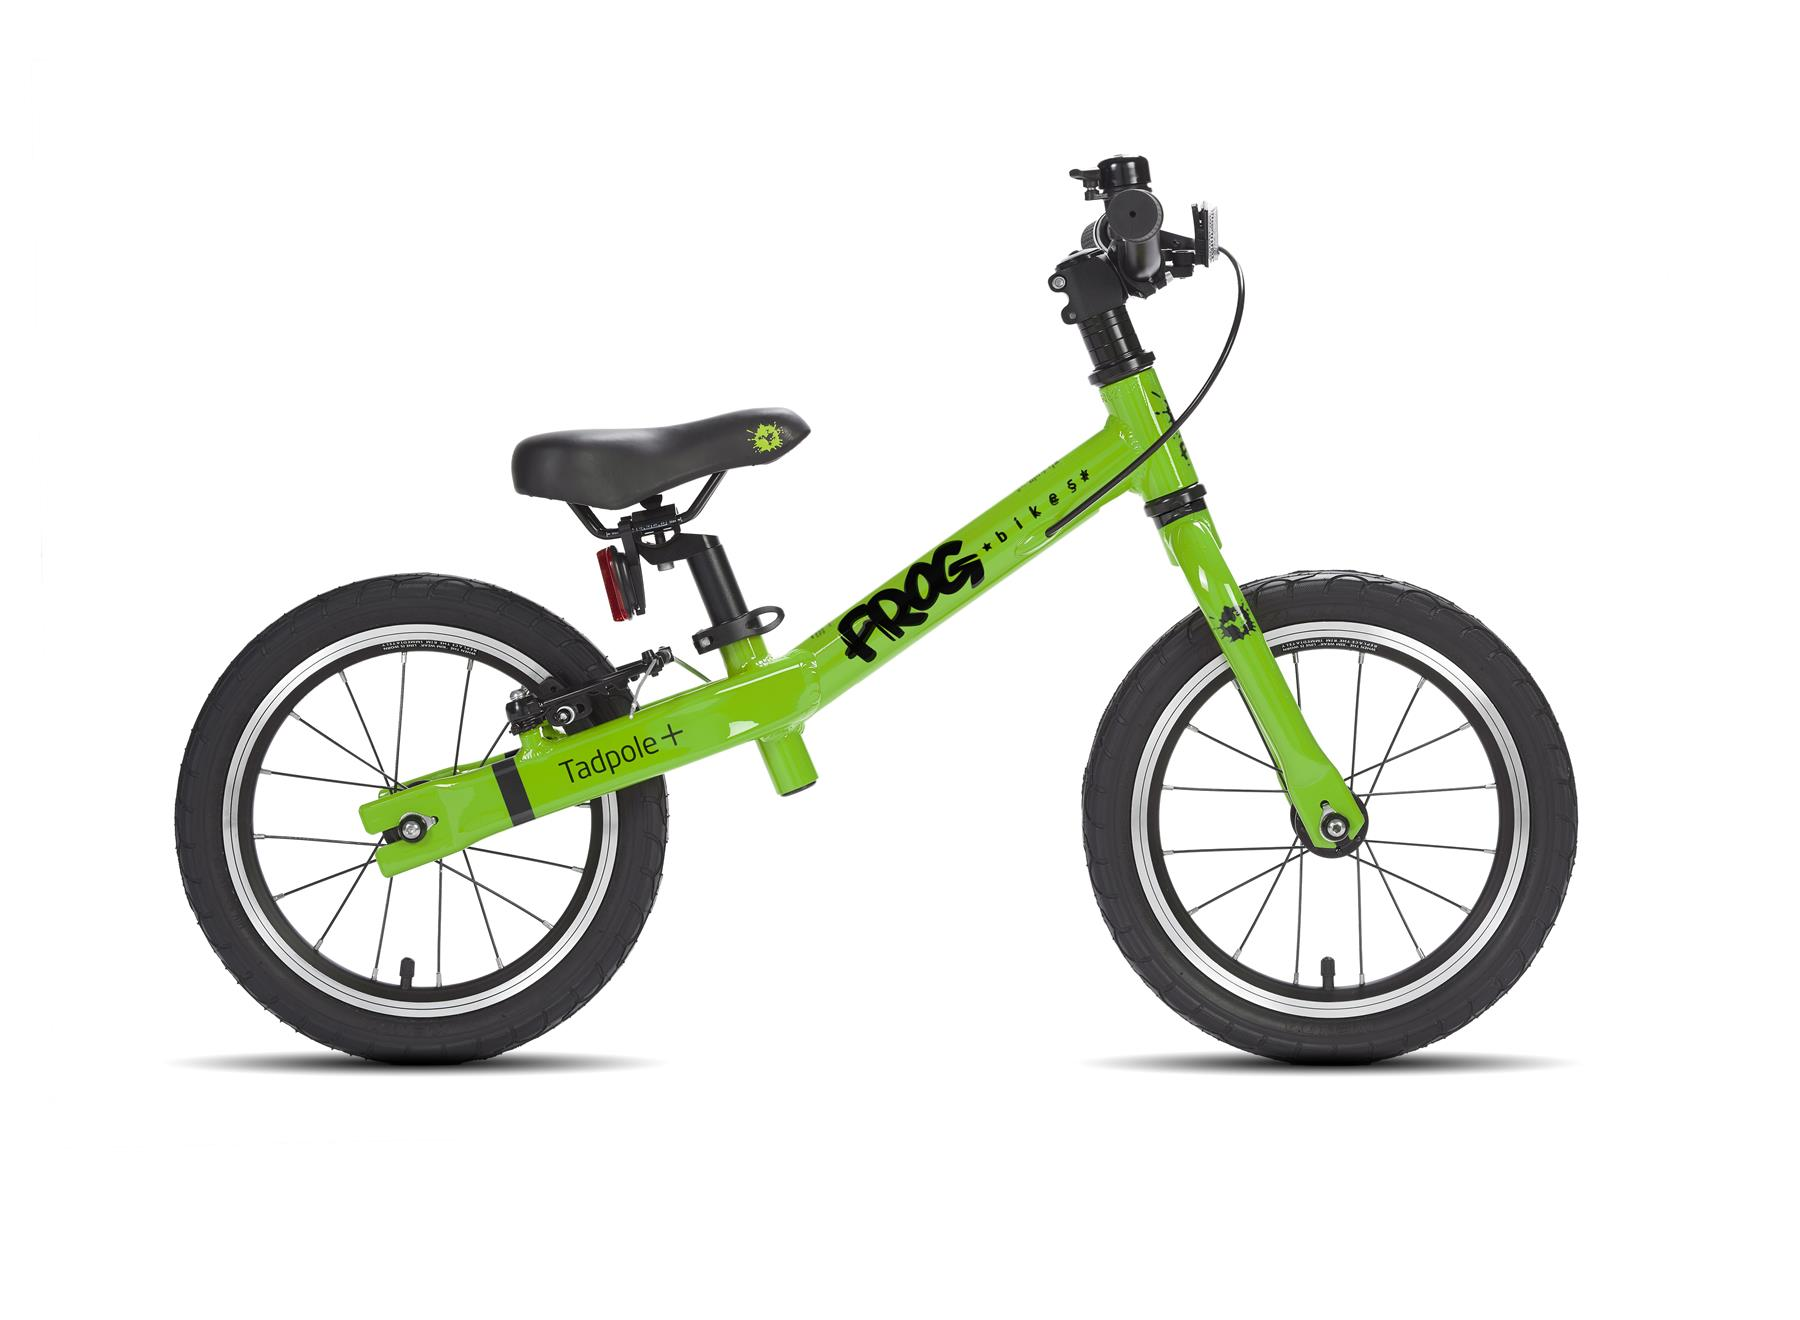 Frog Bikes Tadpole Plus Western Cycle Source For Sports